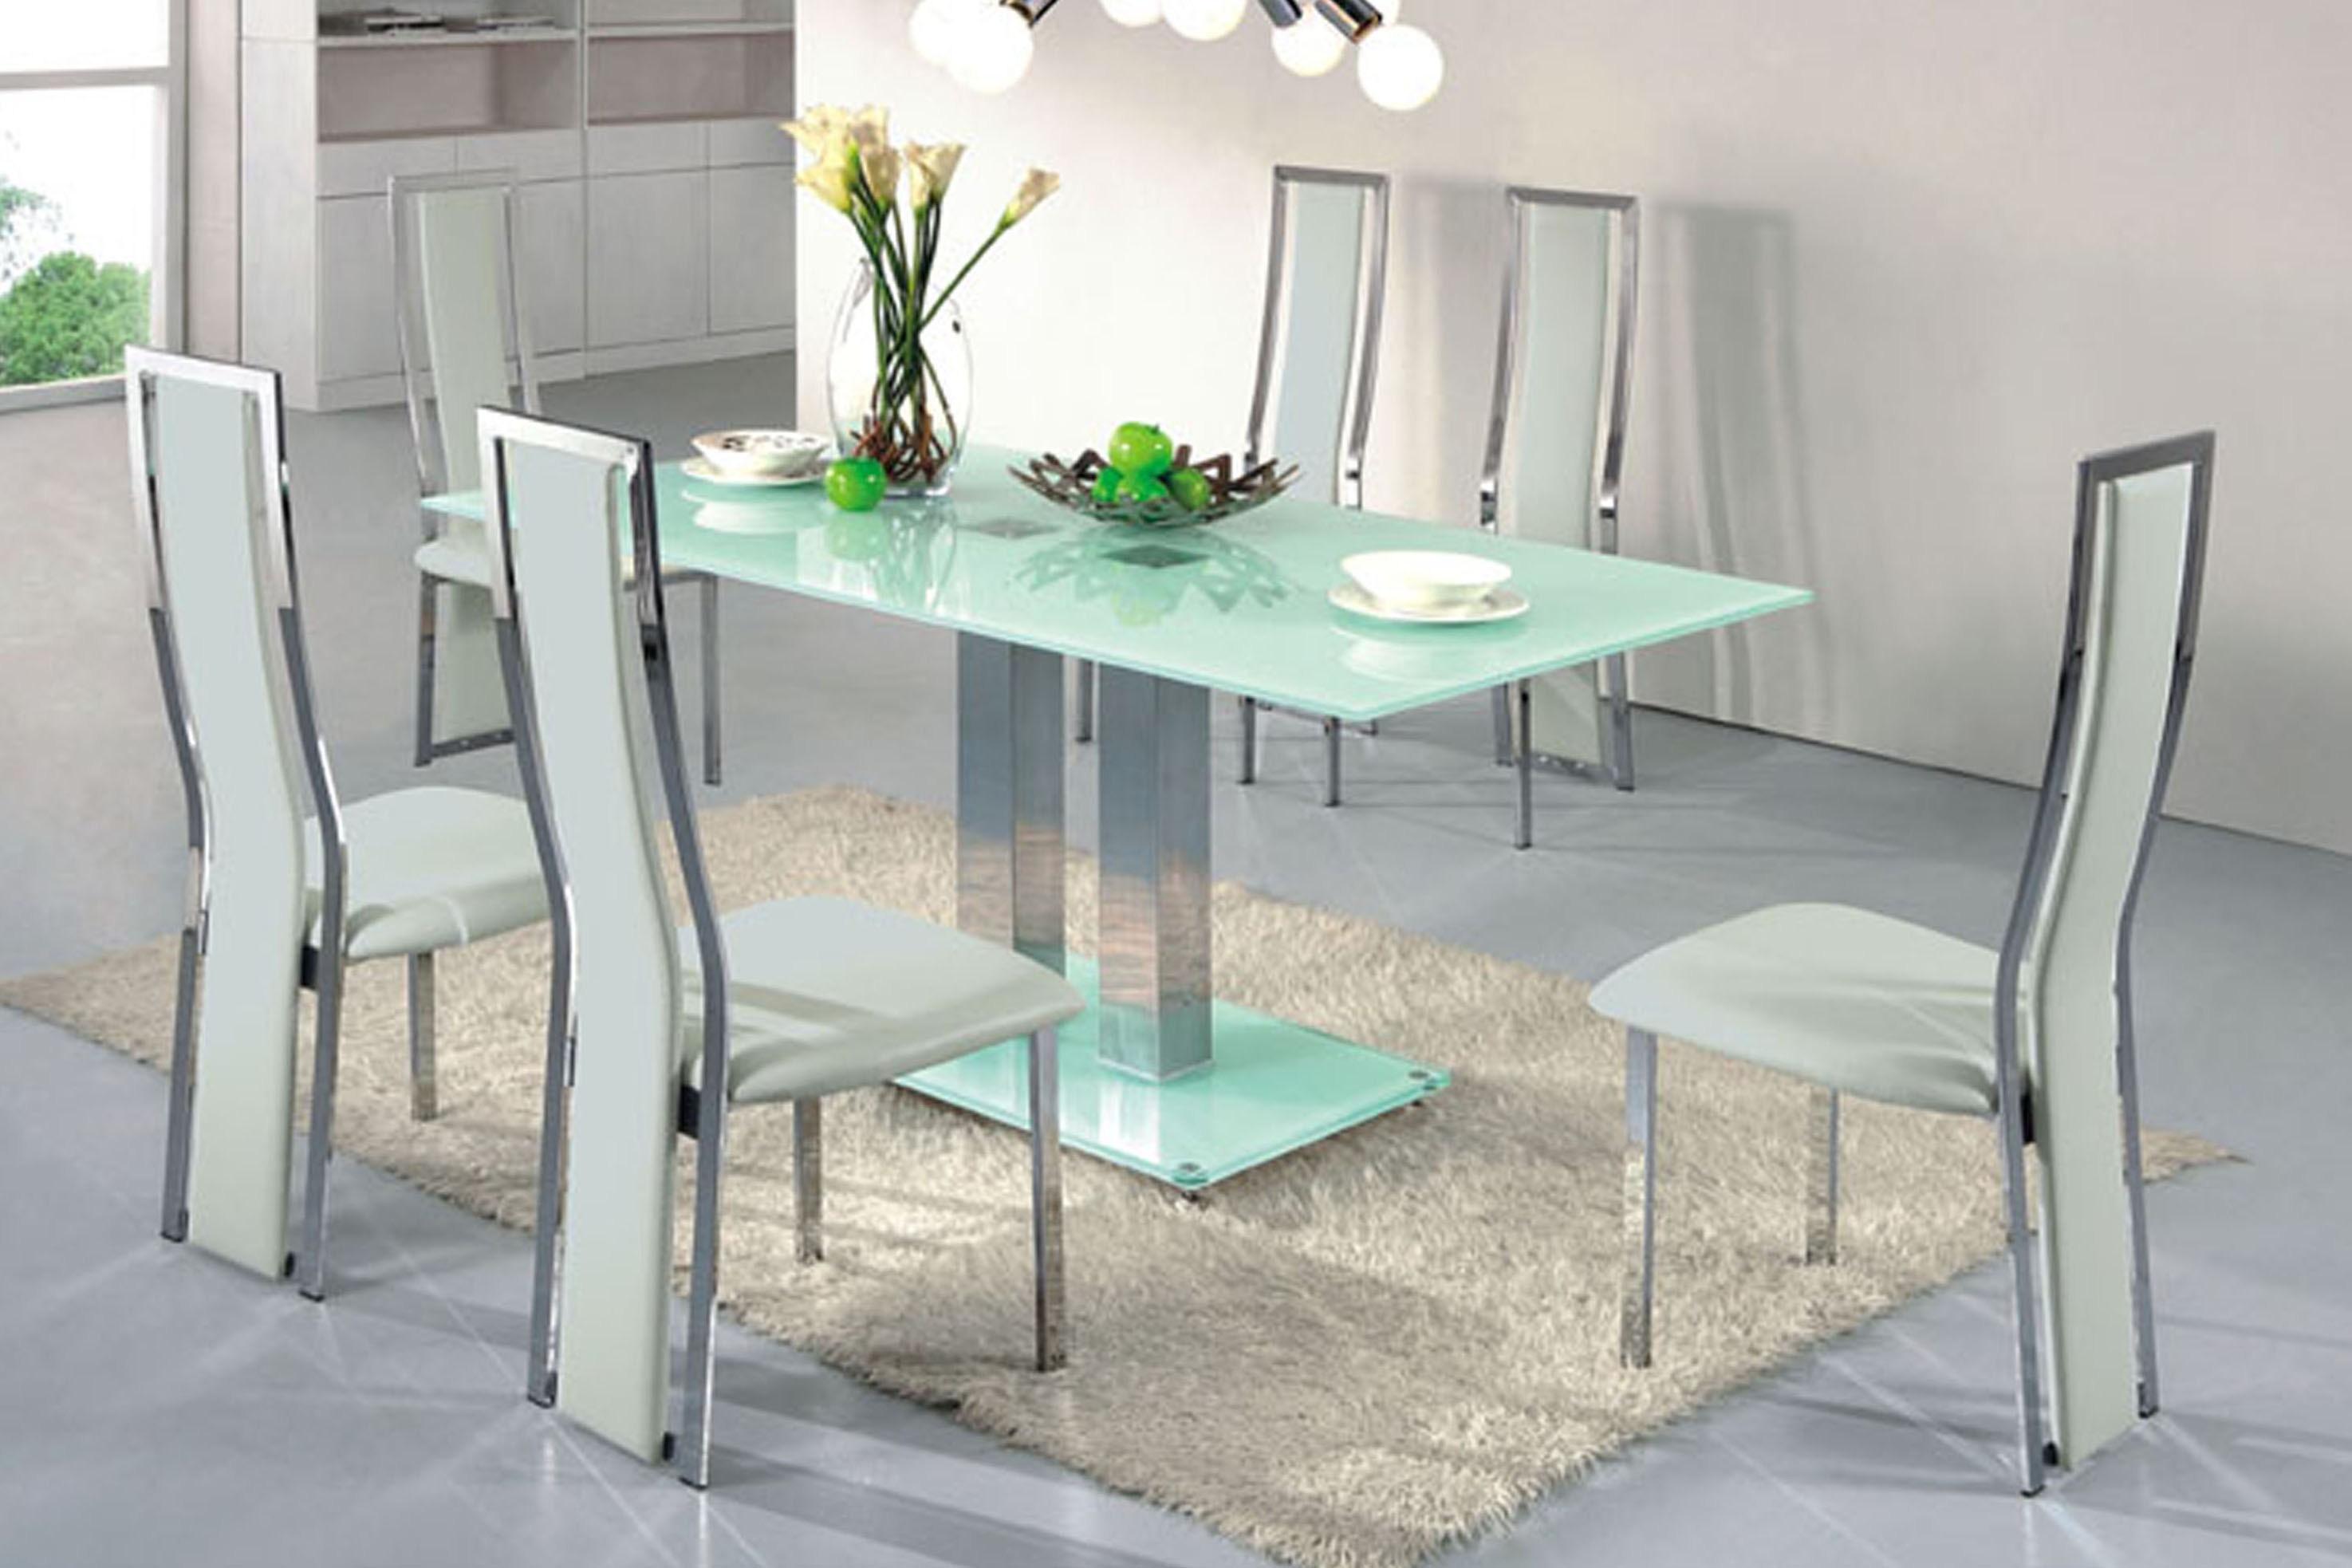 ... rectangle glass dining table style ... SAMIJBU